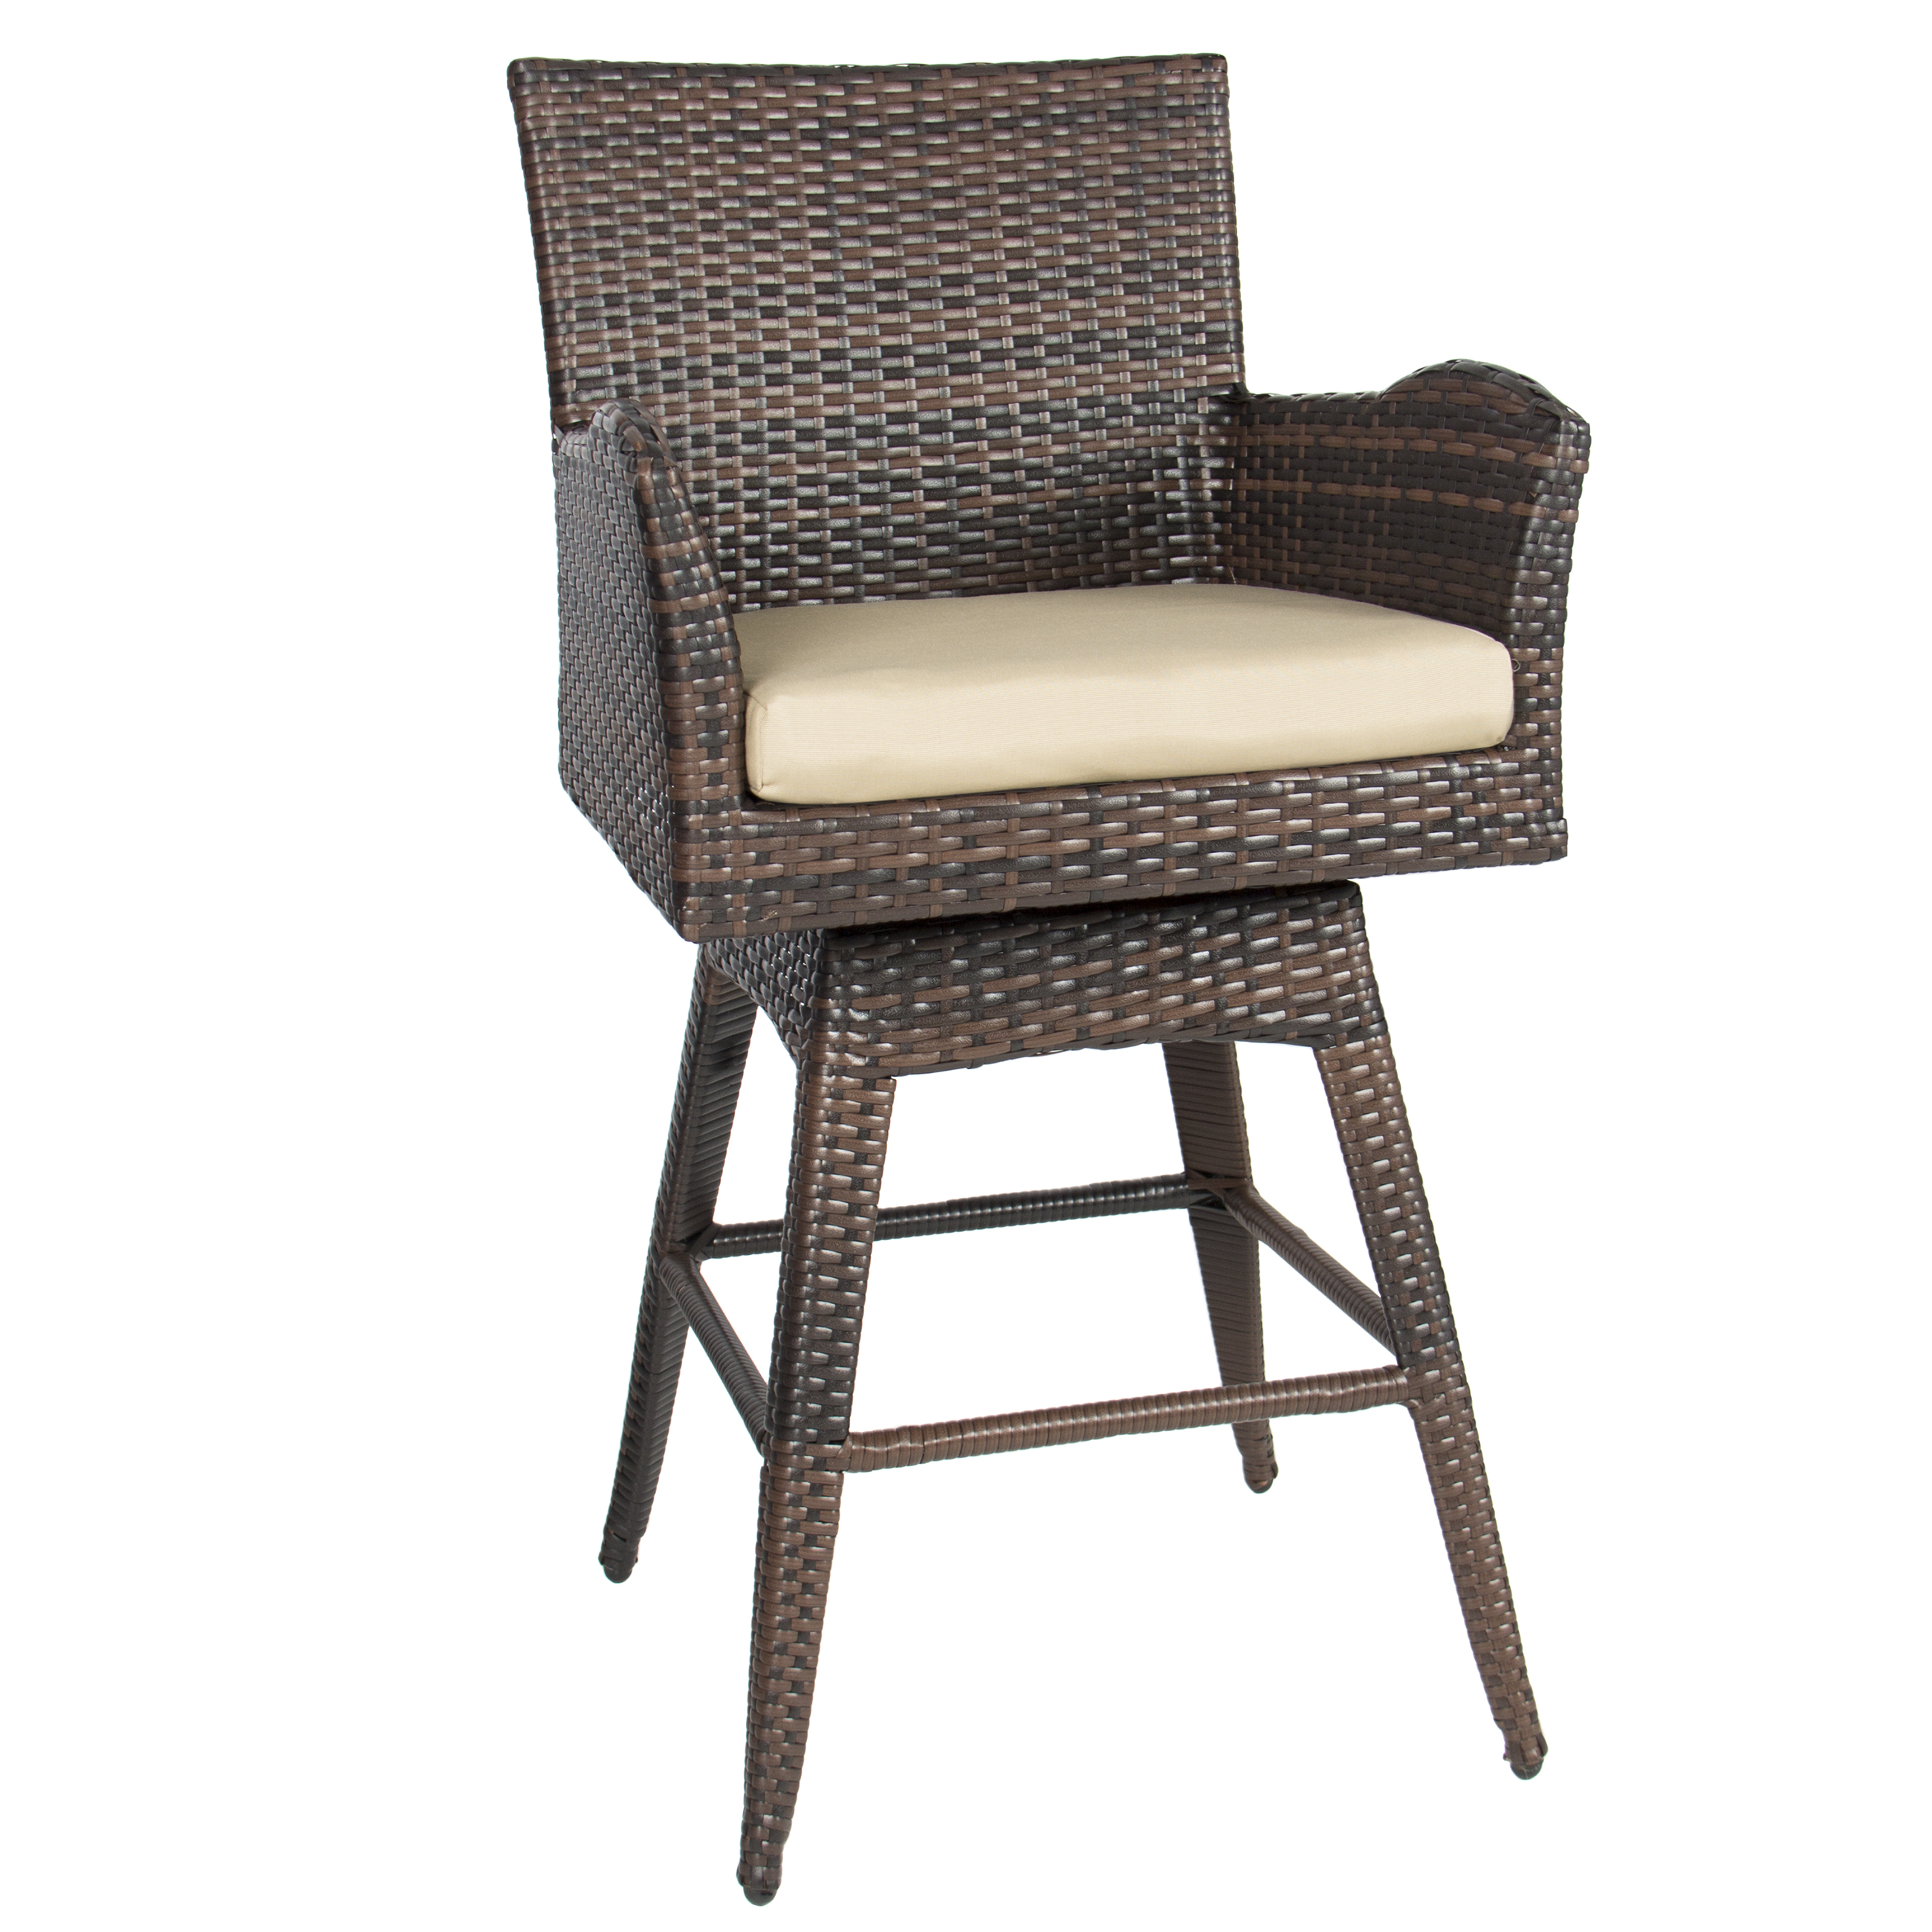 Outdoor Patio Furniture All-Weather Brown PE Wicker Swivel Bar Stool w/ Cushion - Walmart.com  sc 1 st  Walmart & Outdoor Patio Furniture All-Weather Brown PE Wicker Swivel Bar ... islam-shia.org